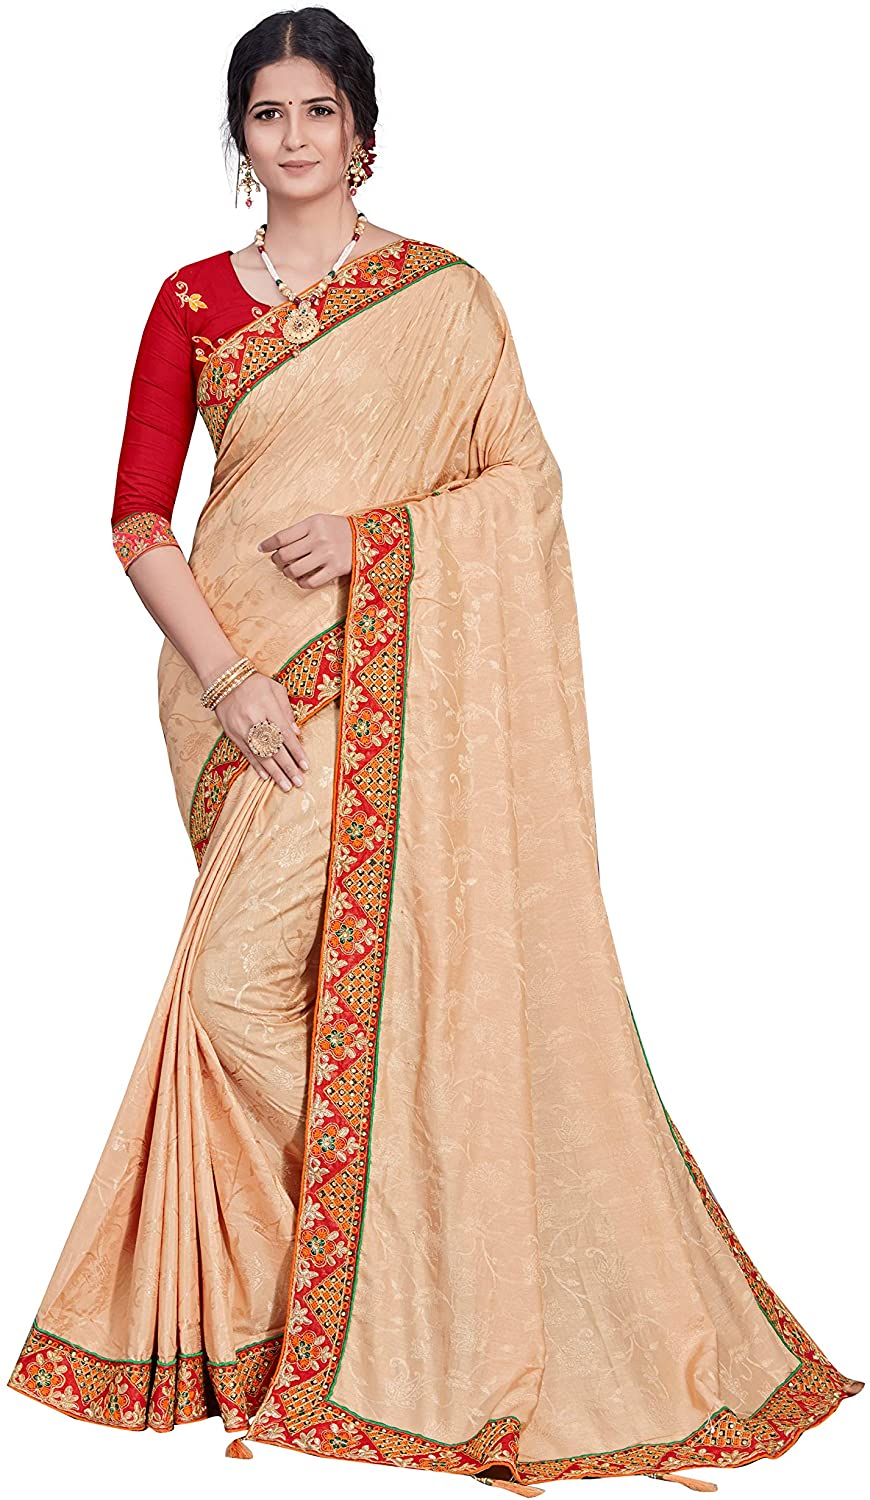 Women's Wear Indian Traditional Wedding Wear Embroidery Saree with Unstich Blouse Piece Pari 1